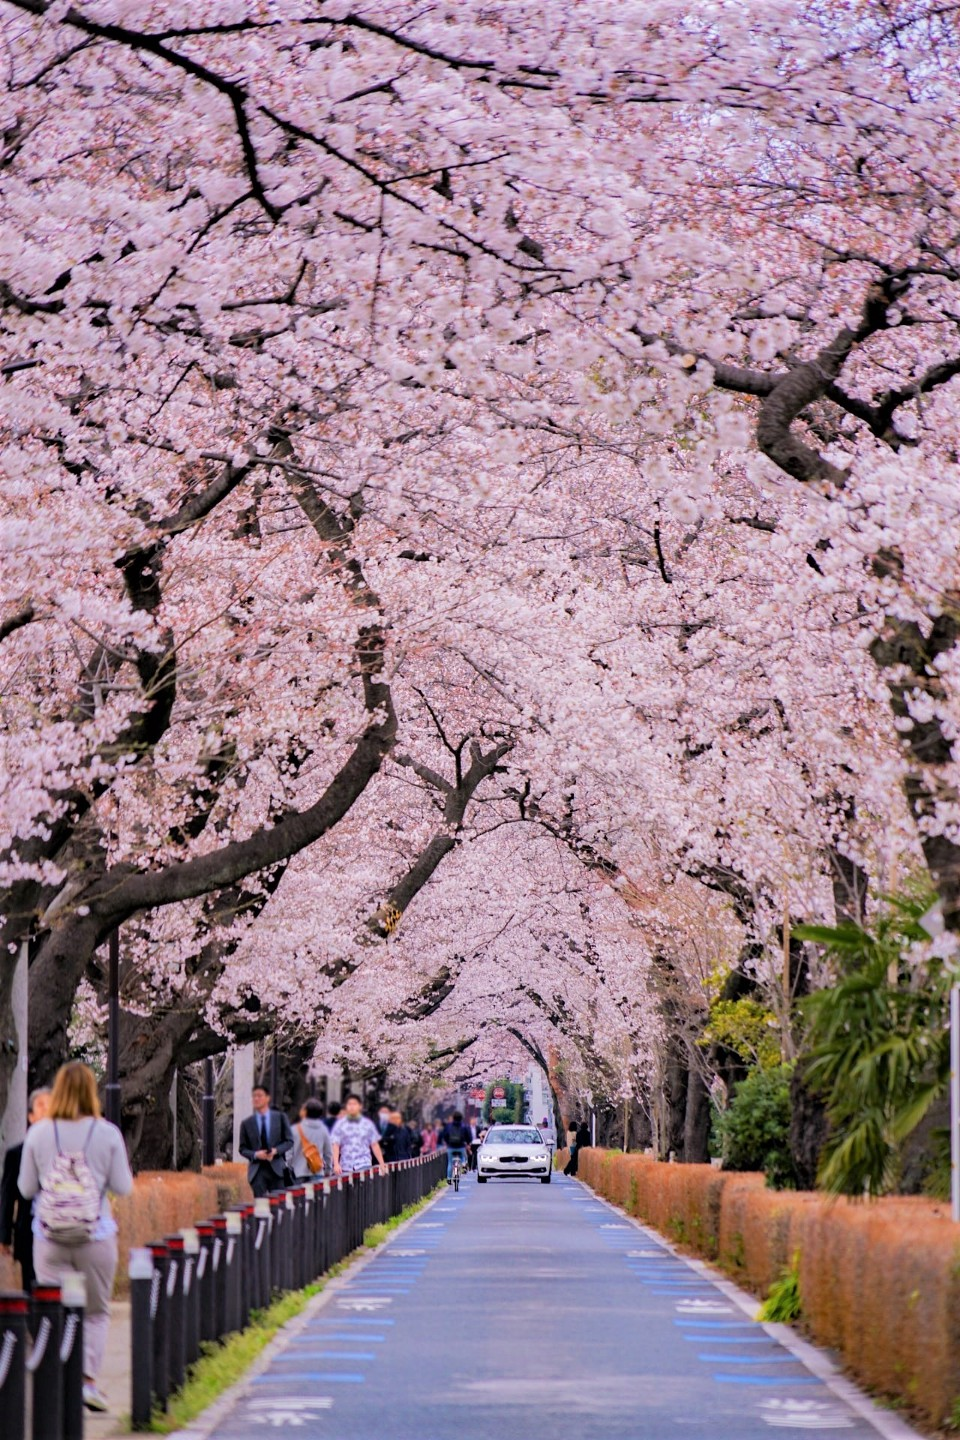 Pink tunnel formed by cherry blossoms